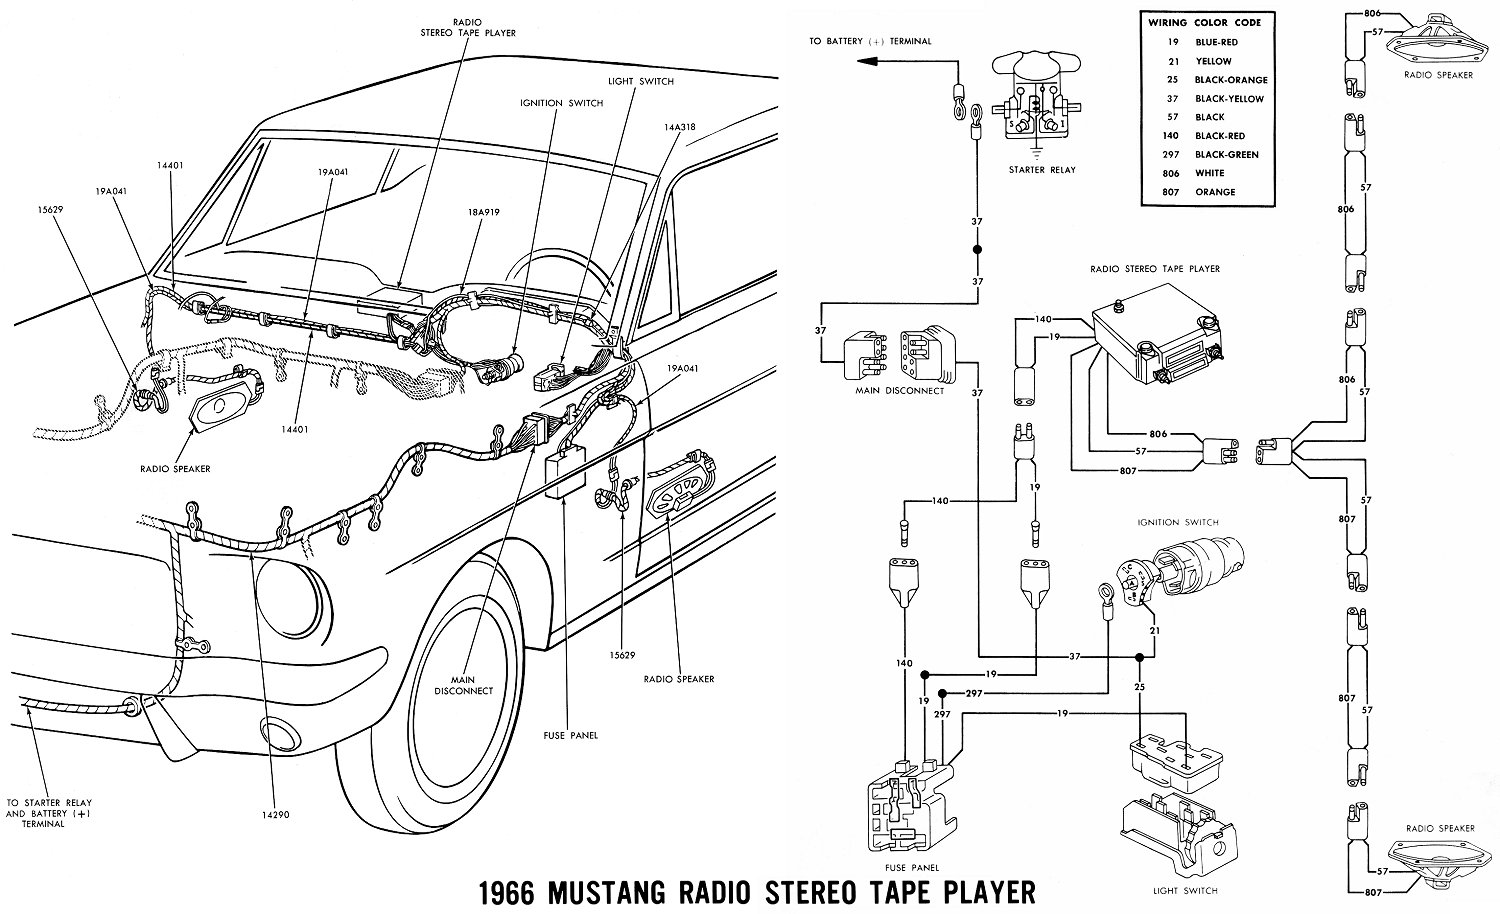 1966 Mustang Wiring Diagrams Average Joe Restoration Well Control Panel Schematics On Diagram Sm66ste